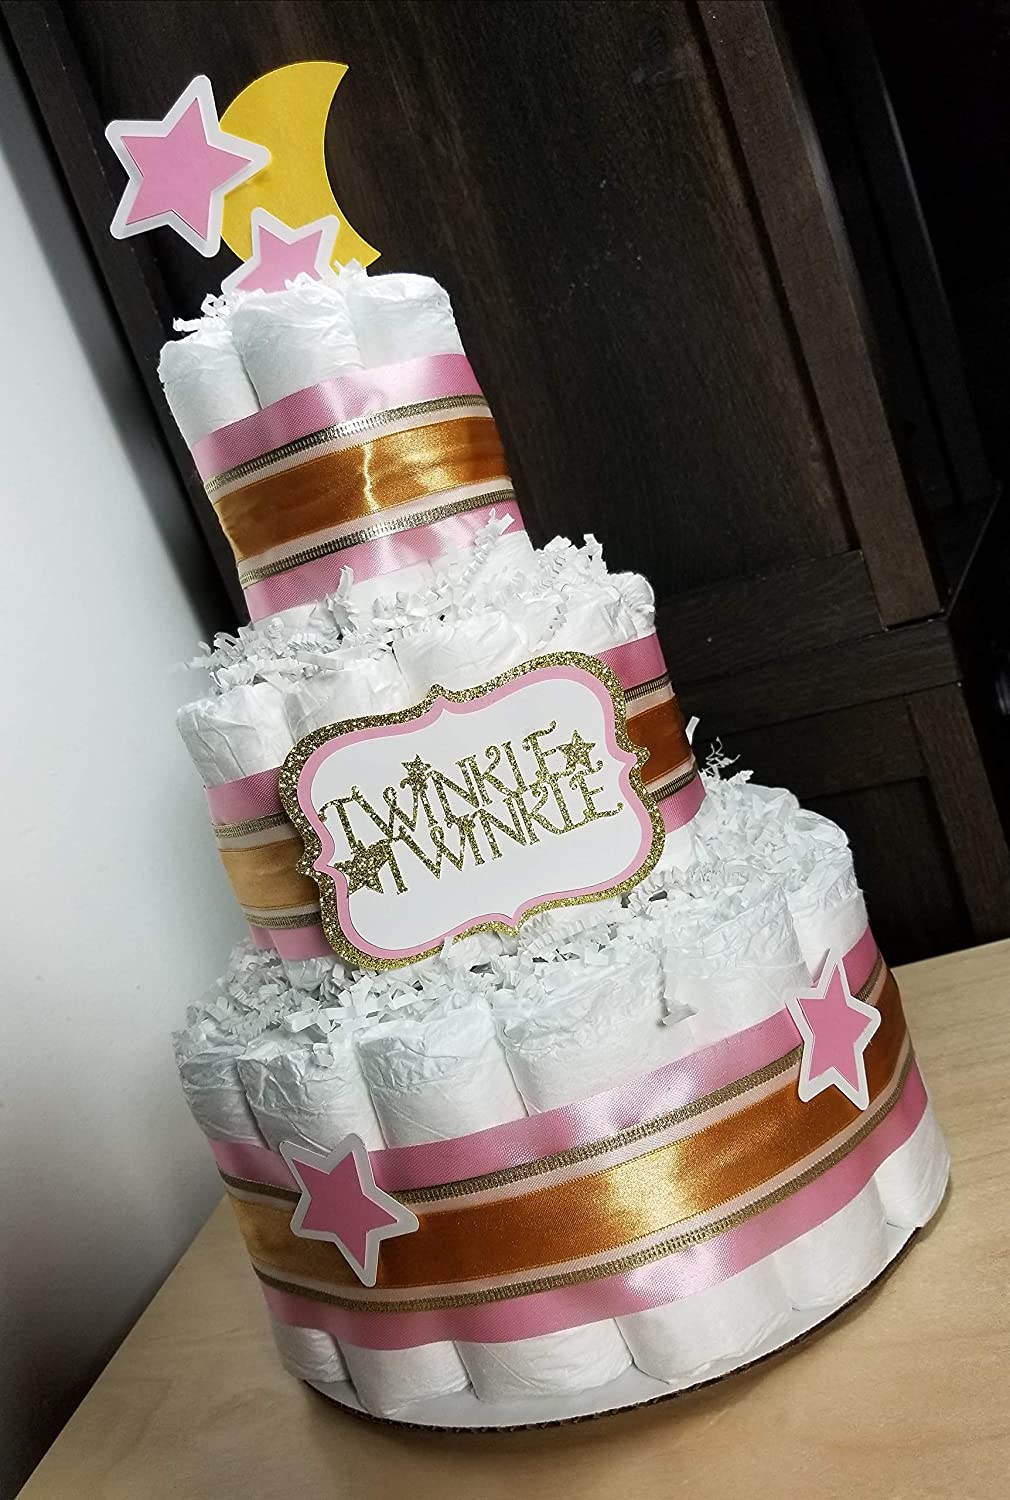 Twinkle Twinkle Pink and Gold with Moon and Stars Blue, Pink, and Yellow Options 3 Tier Diaper Cake